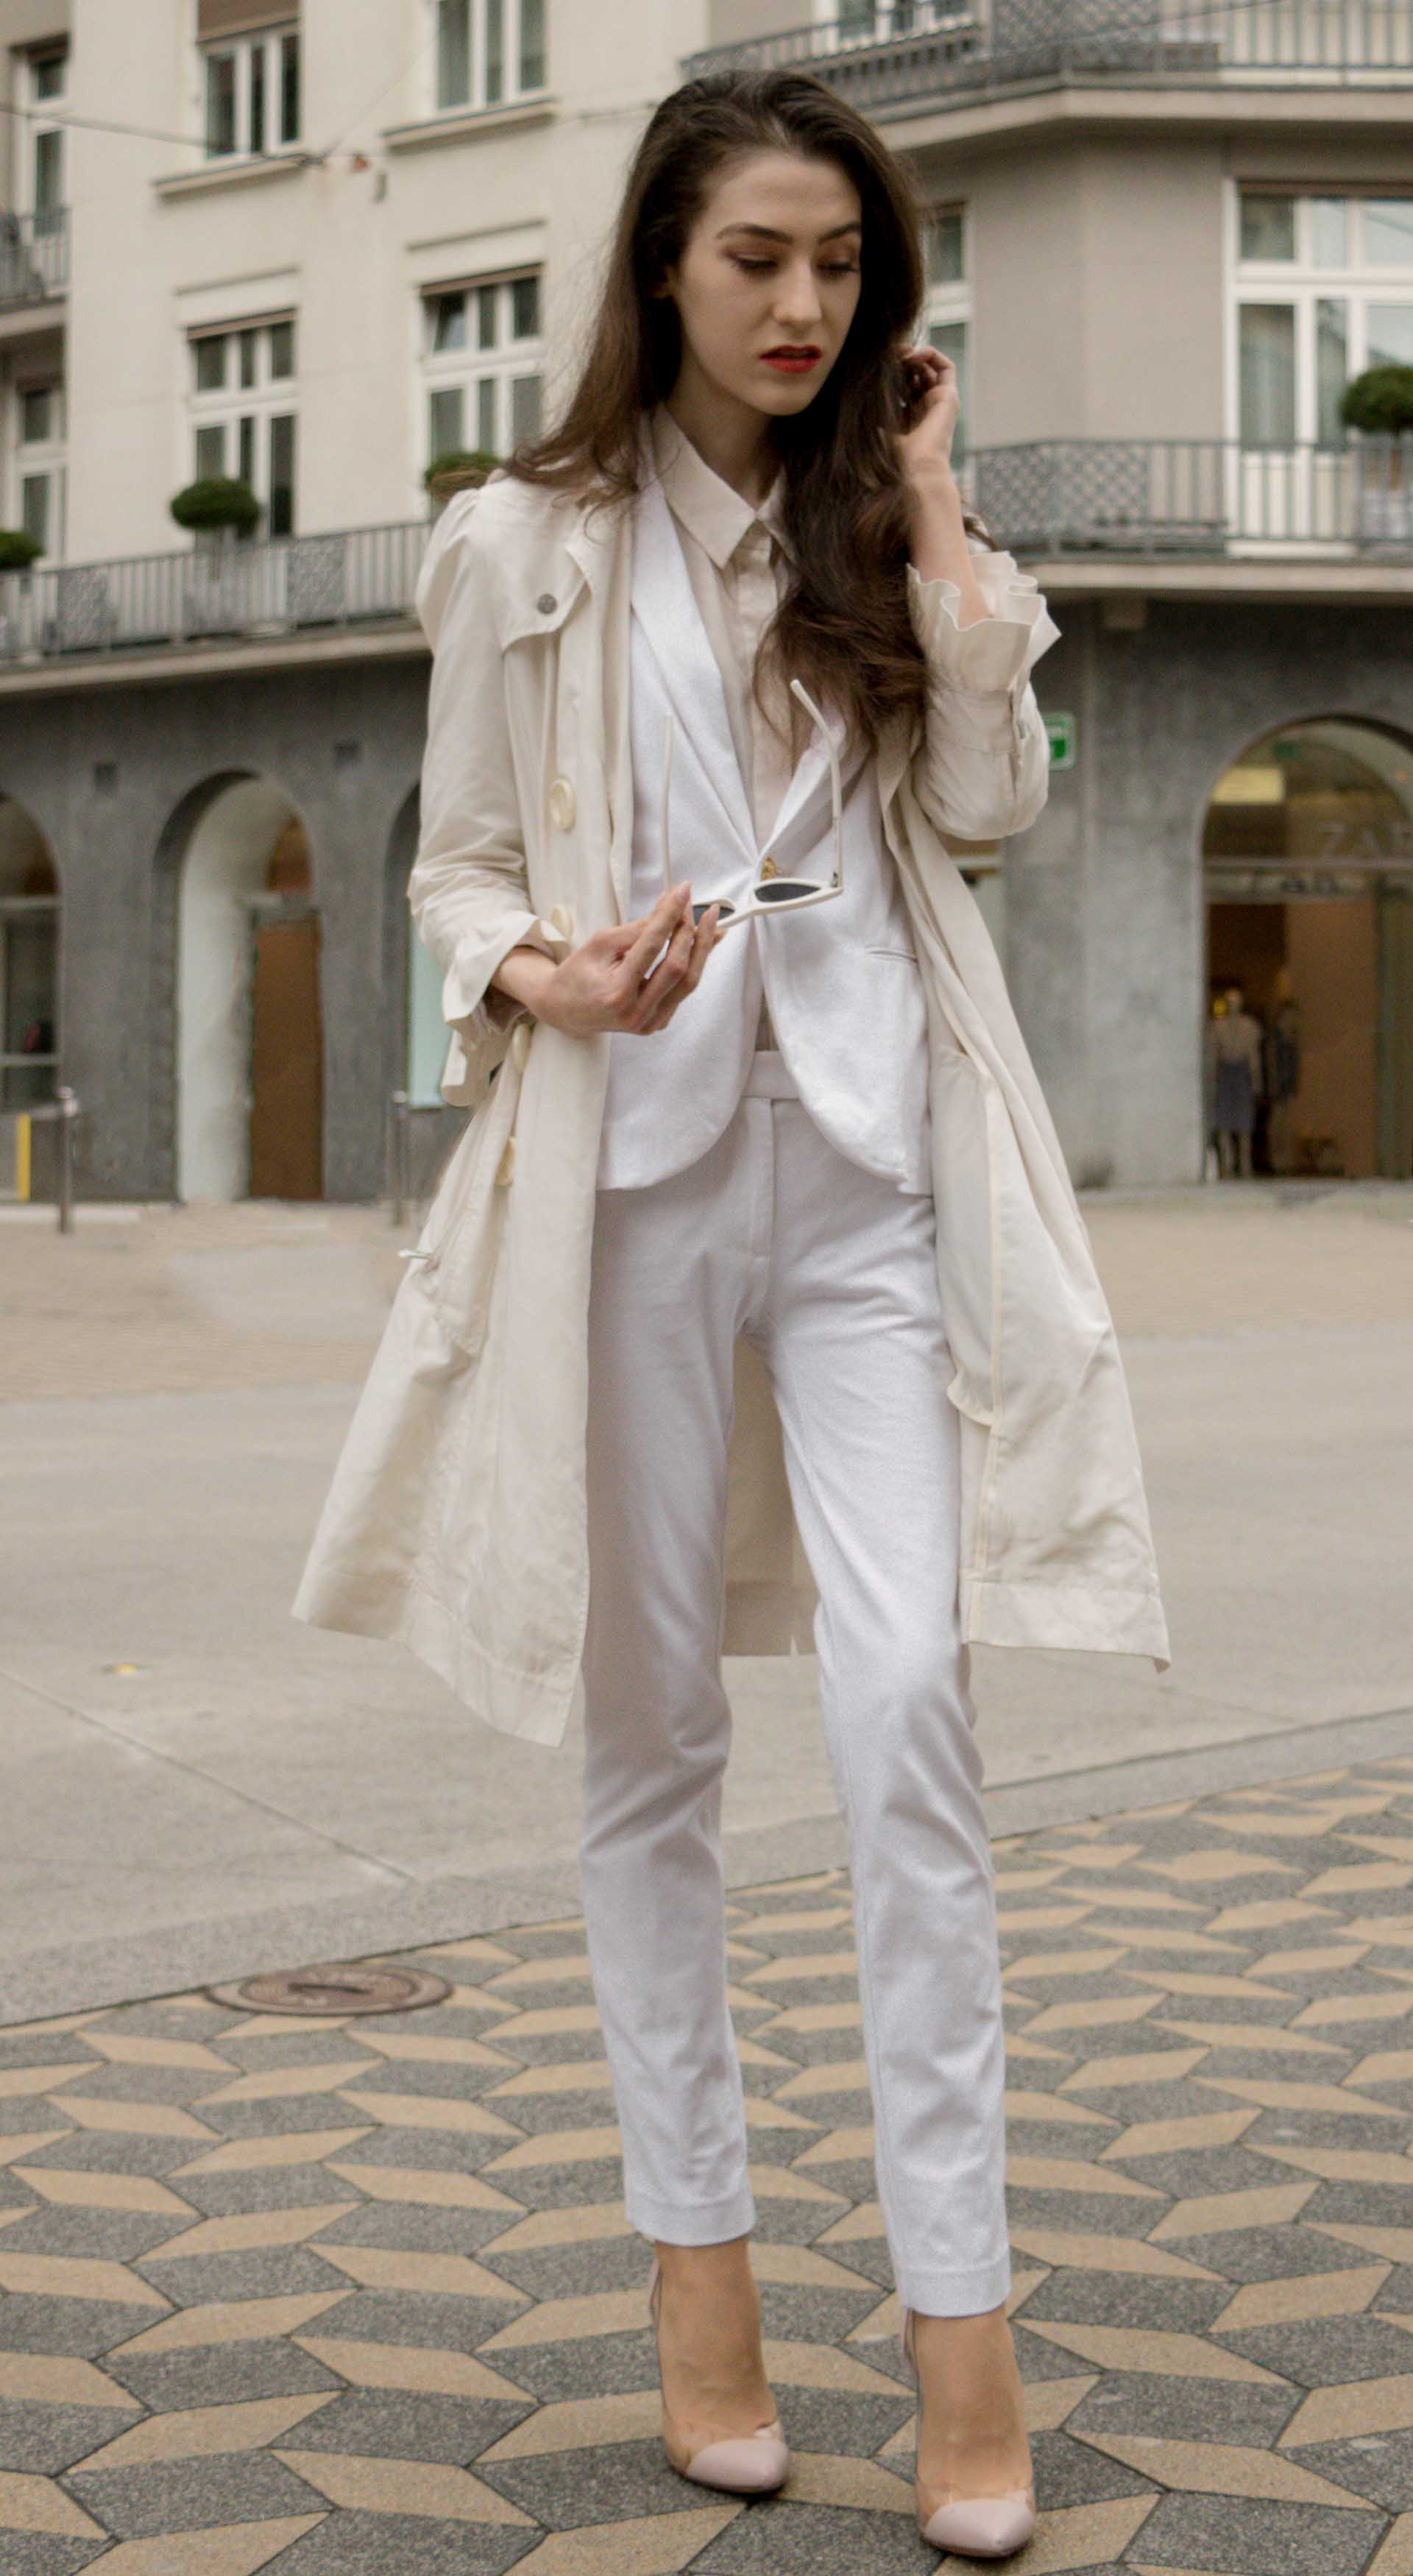 Veronika Lipar Fashion Blogger of Brunette from Wall Street wearing formal business white suit from Juicy Couture, long white trench coat with ruffled sleeves, Adam Selman x Lespecs white lolita sunglasses, blush Gianvito Rossi plexi pumps for work in spring summer